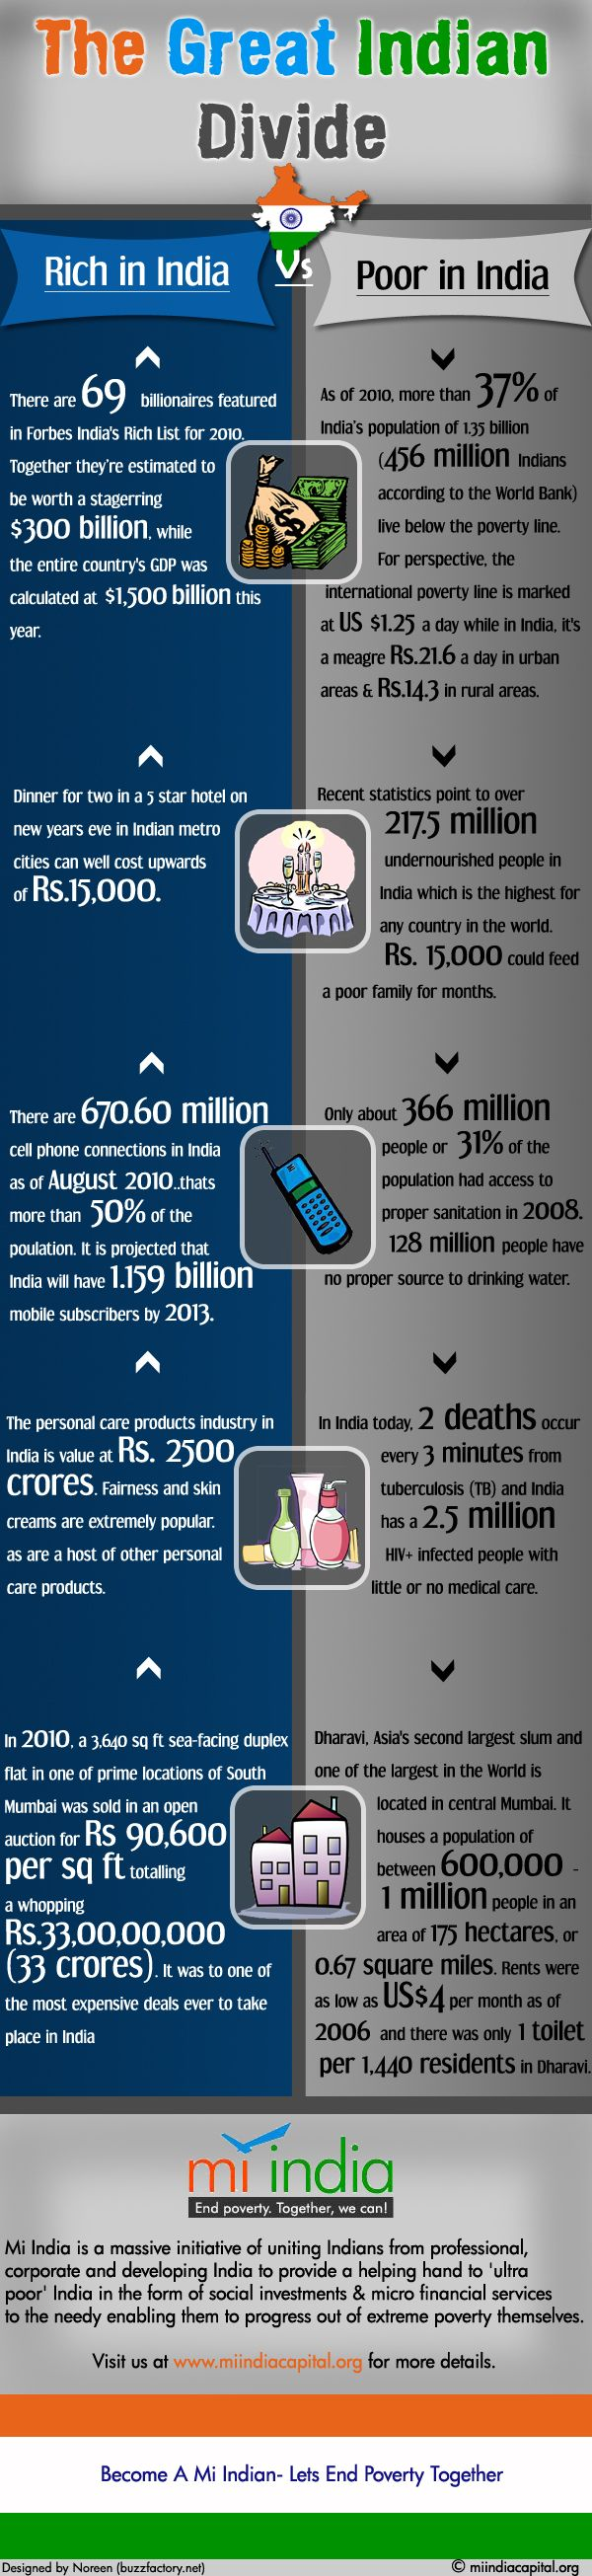 The Great Indian Divide Rich In India Versus Poor In India Infographic Infographics In 2019 India Facts History Education History Facts